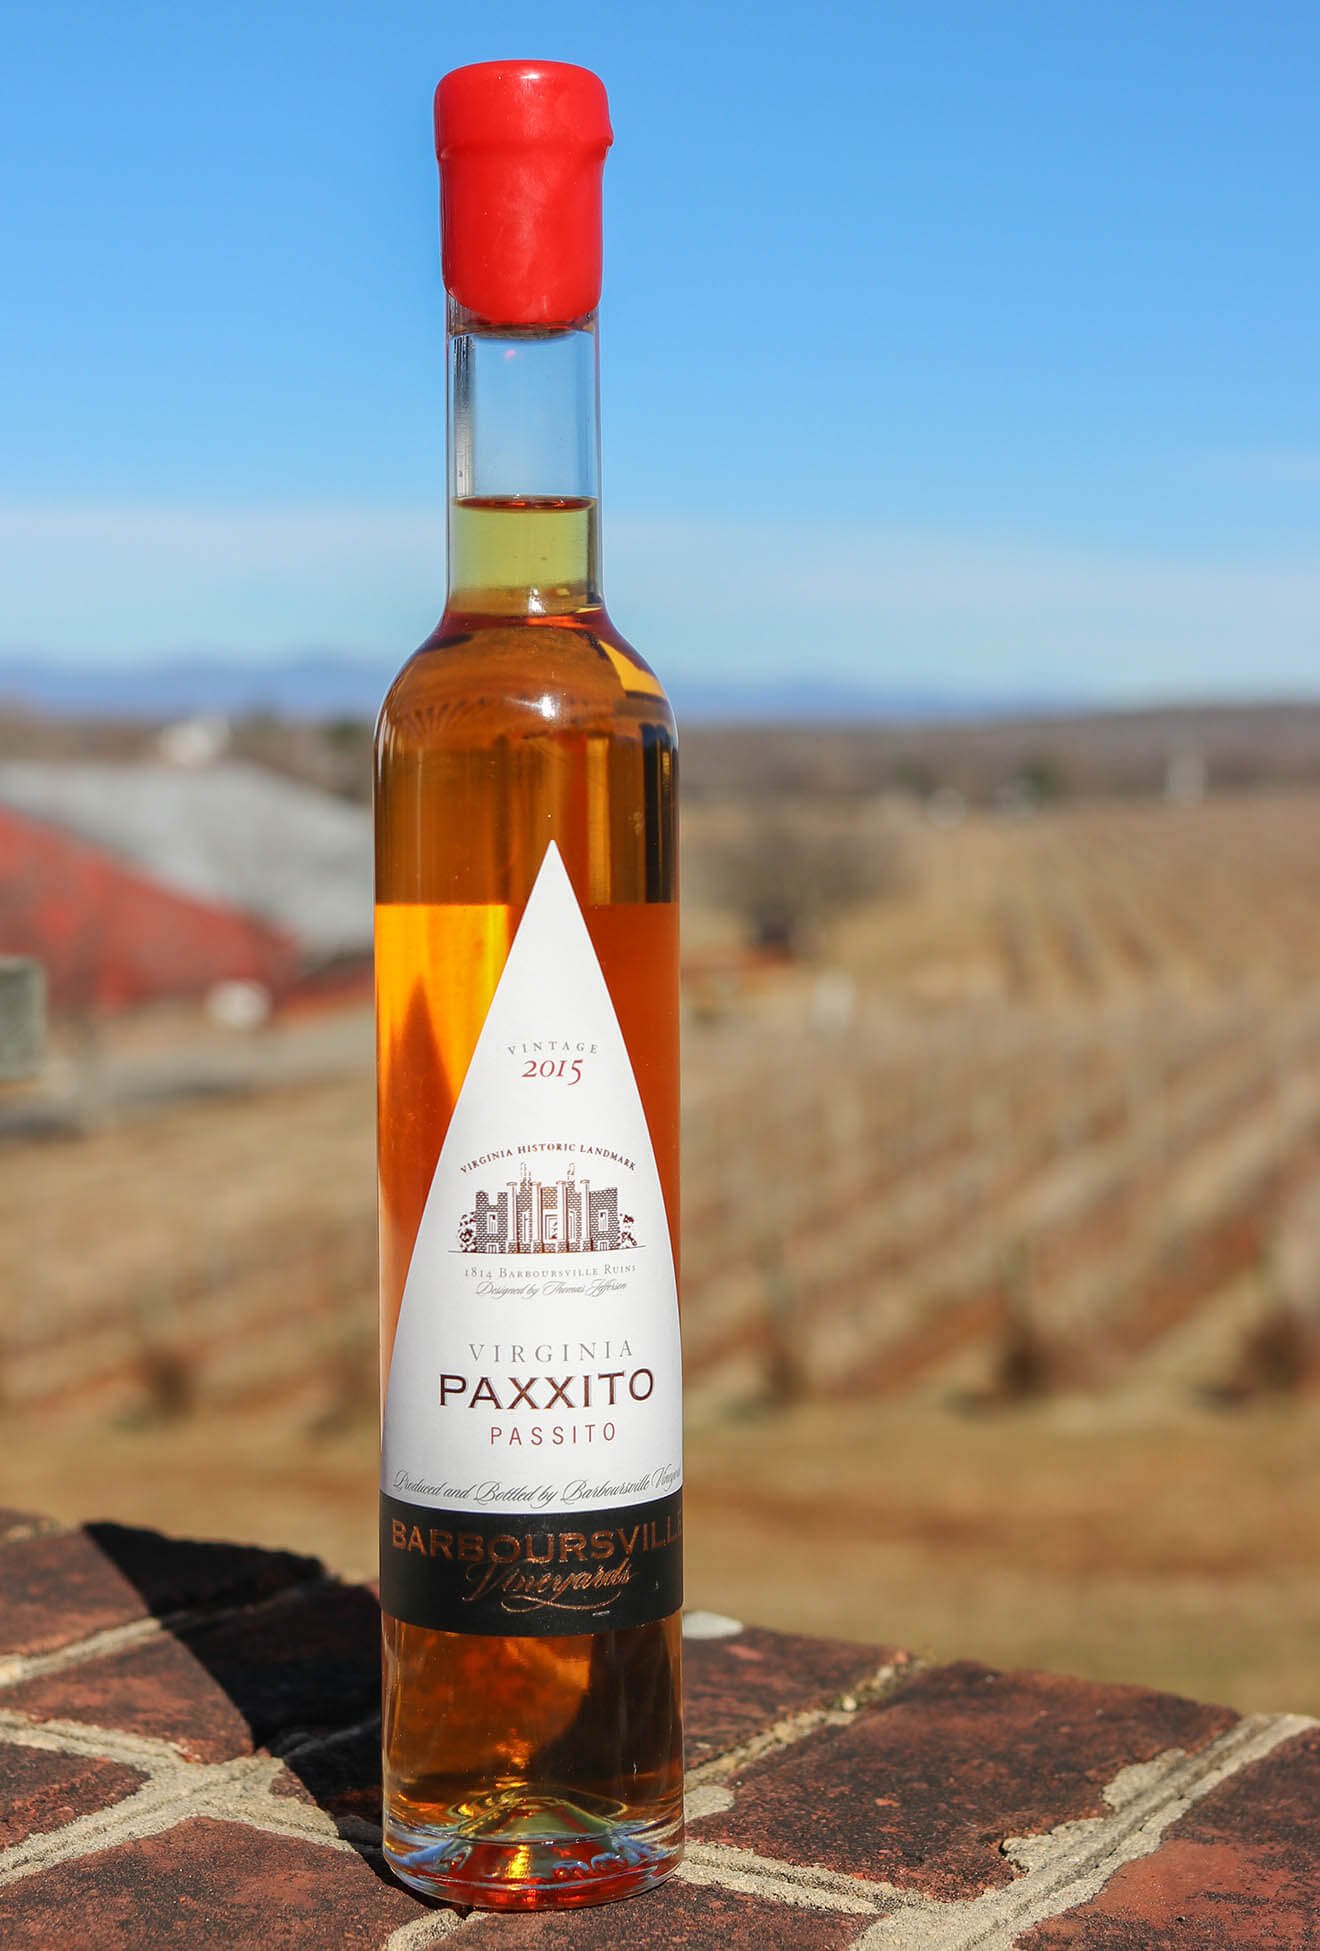 Paxxito bottle with vineyard background